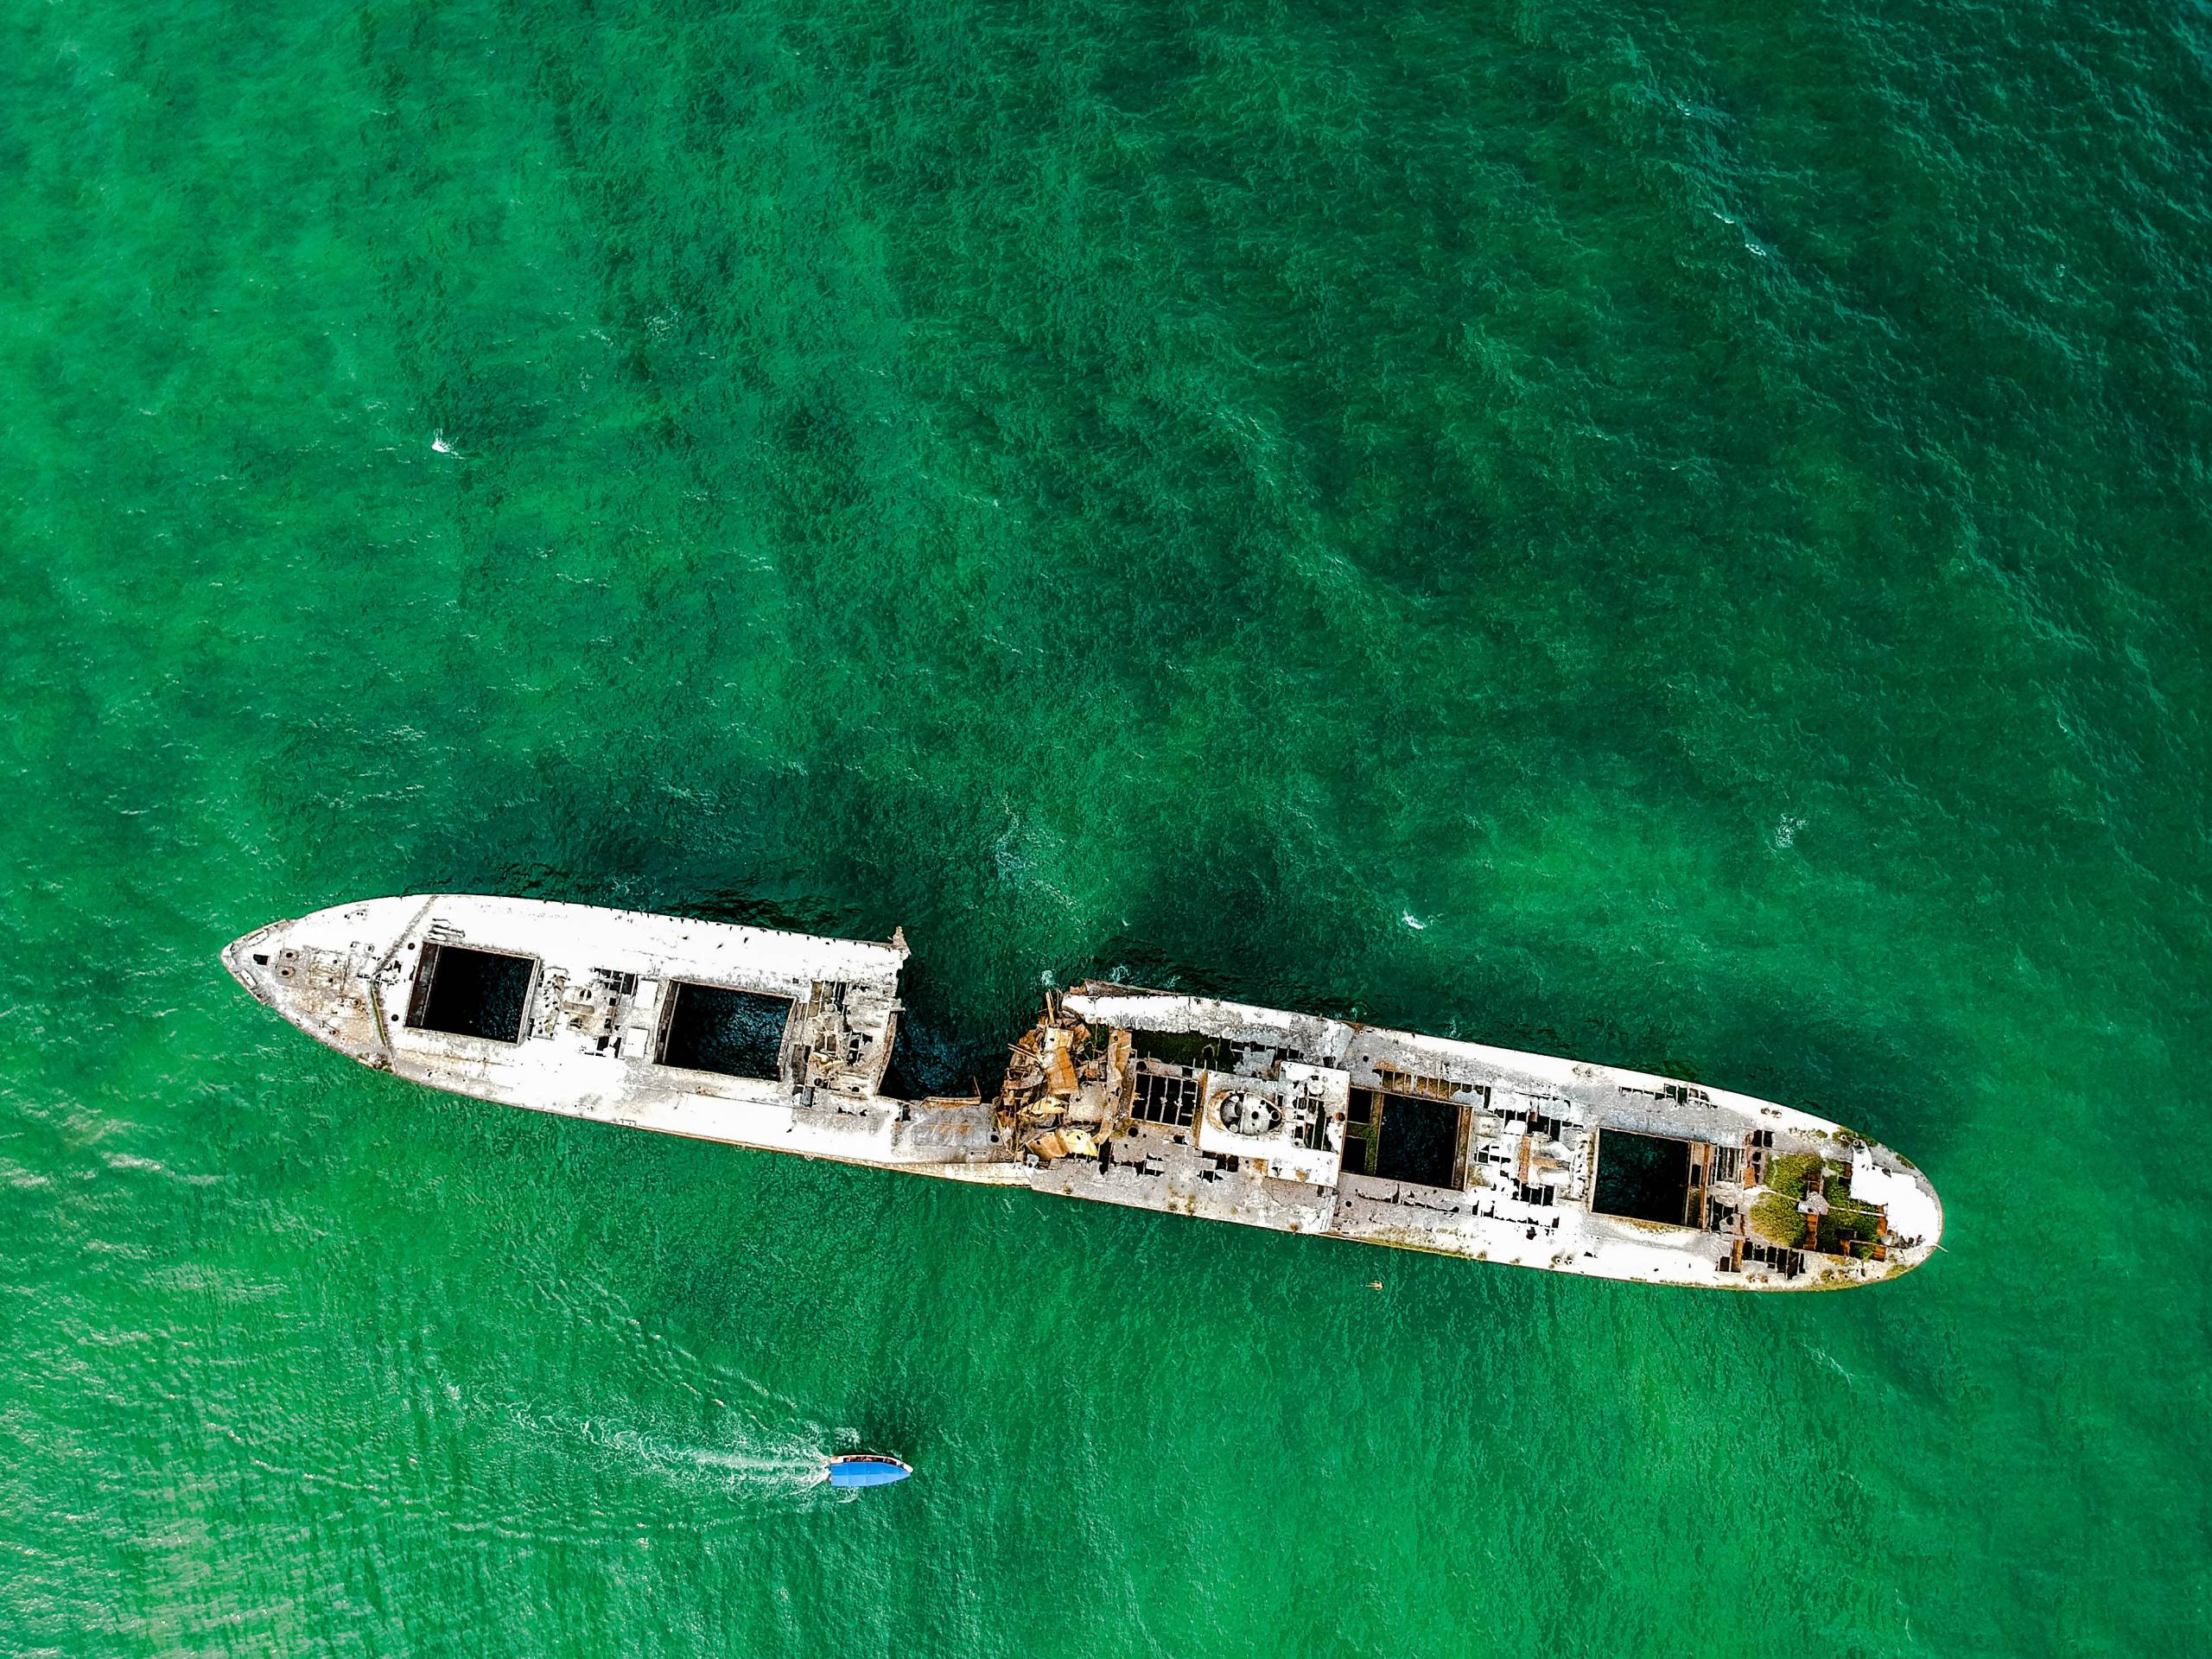 top-view-photo-of-abandoned-white-ship-on-sea-3520249